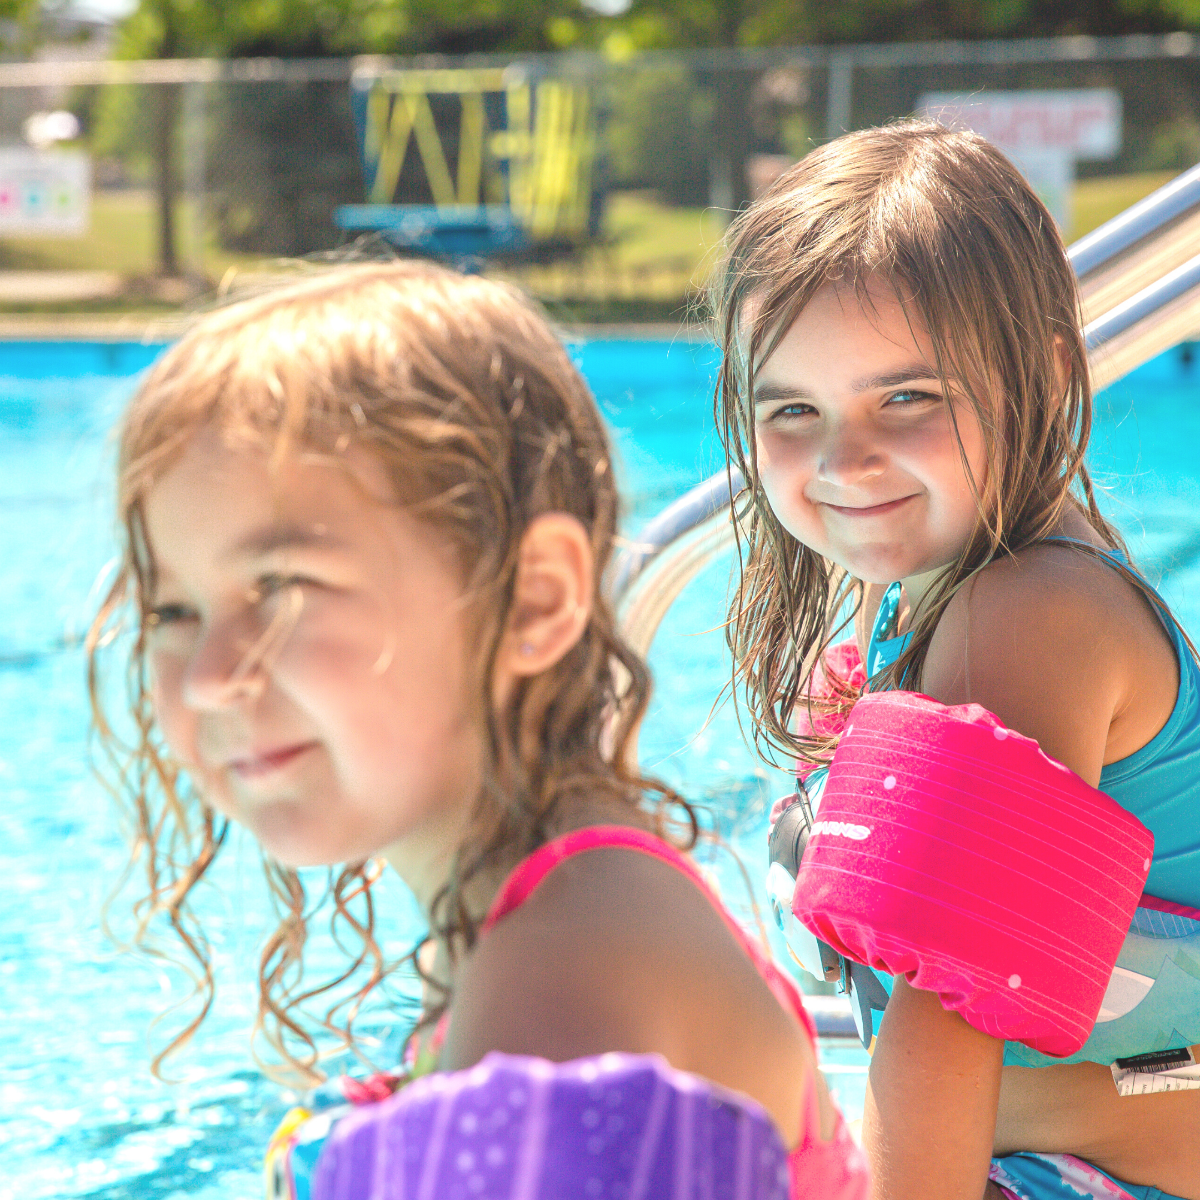 Two young girls sit by the pool on a sunny day.